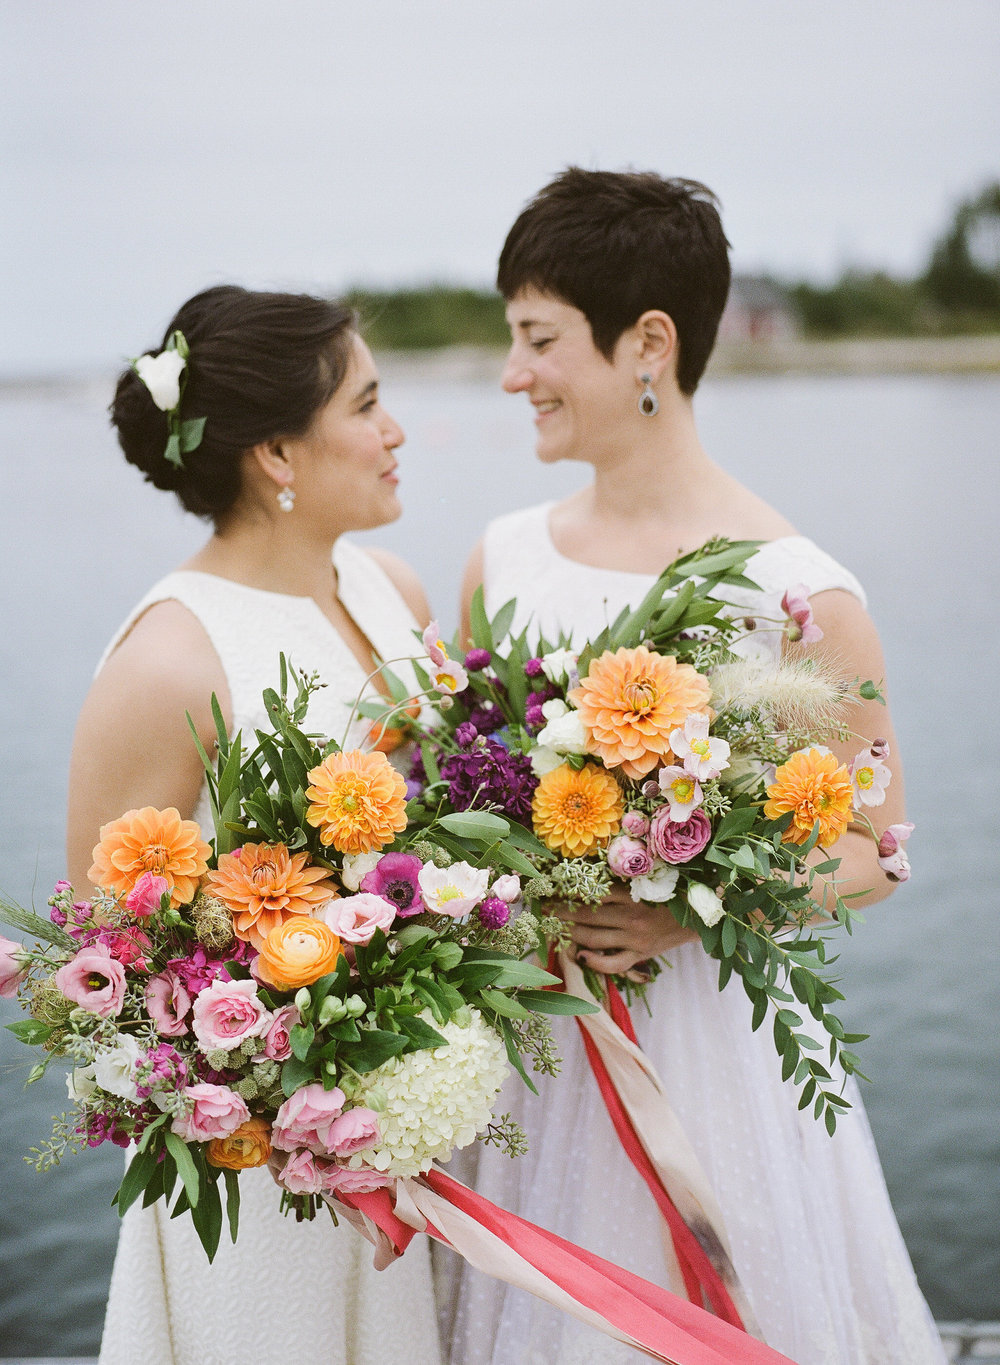 Watershed_Floral_Newagen_Southport_Maine_Coastal_Wedding_172.jpg